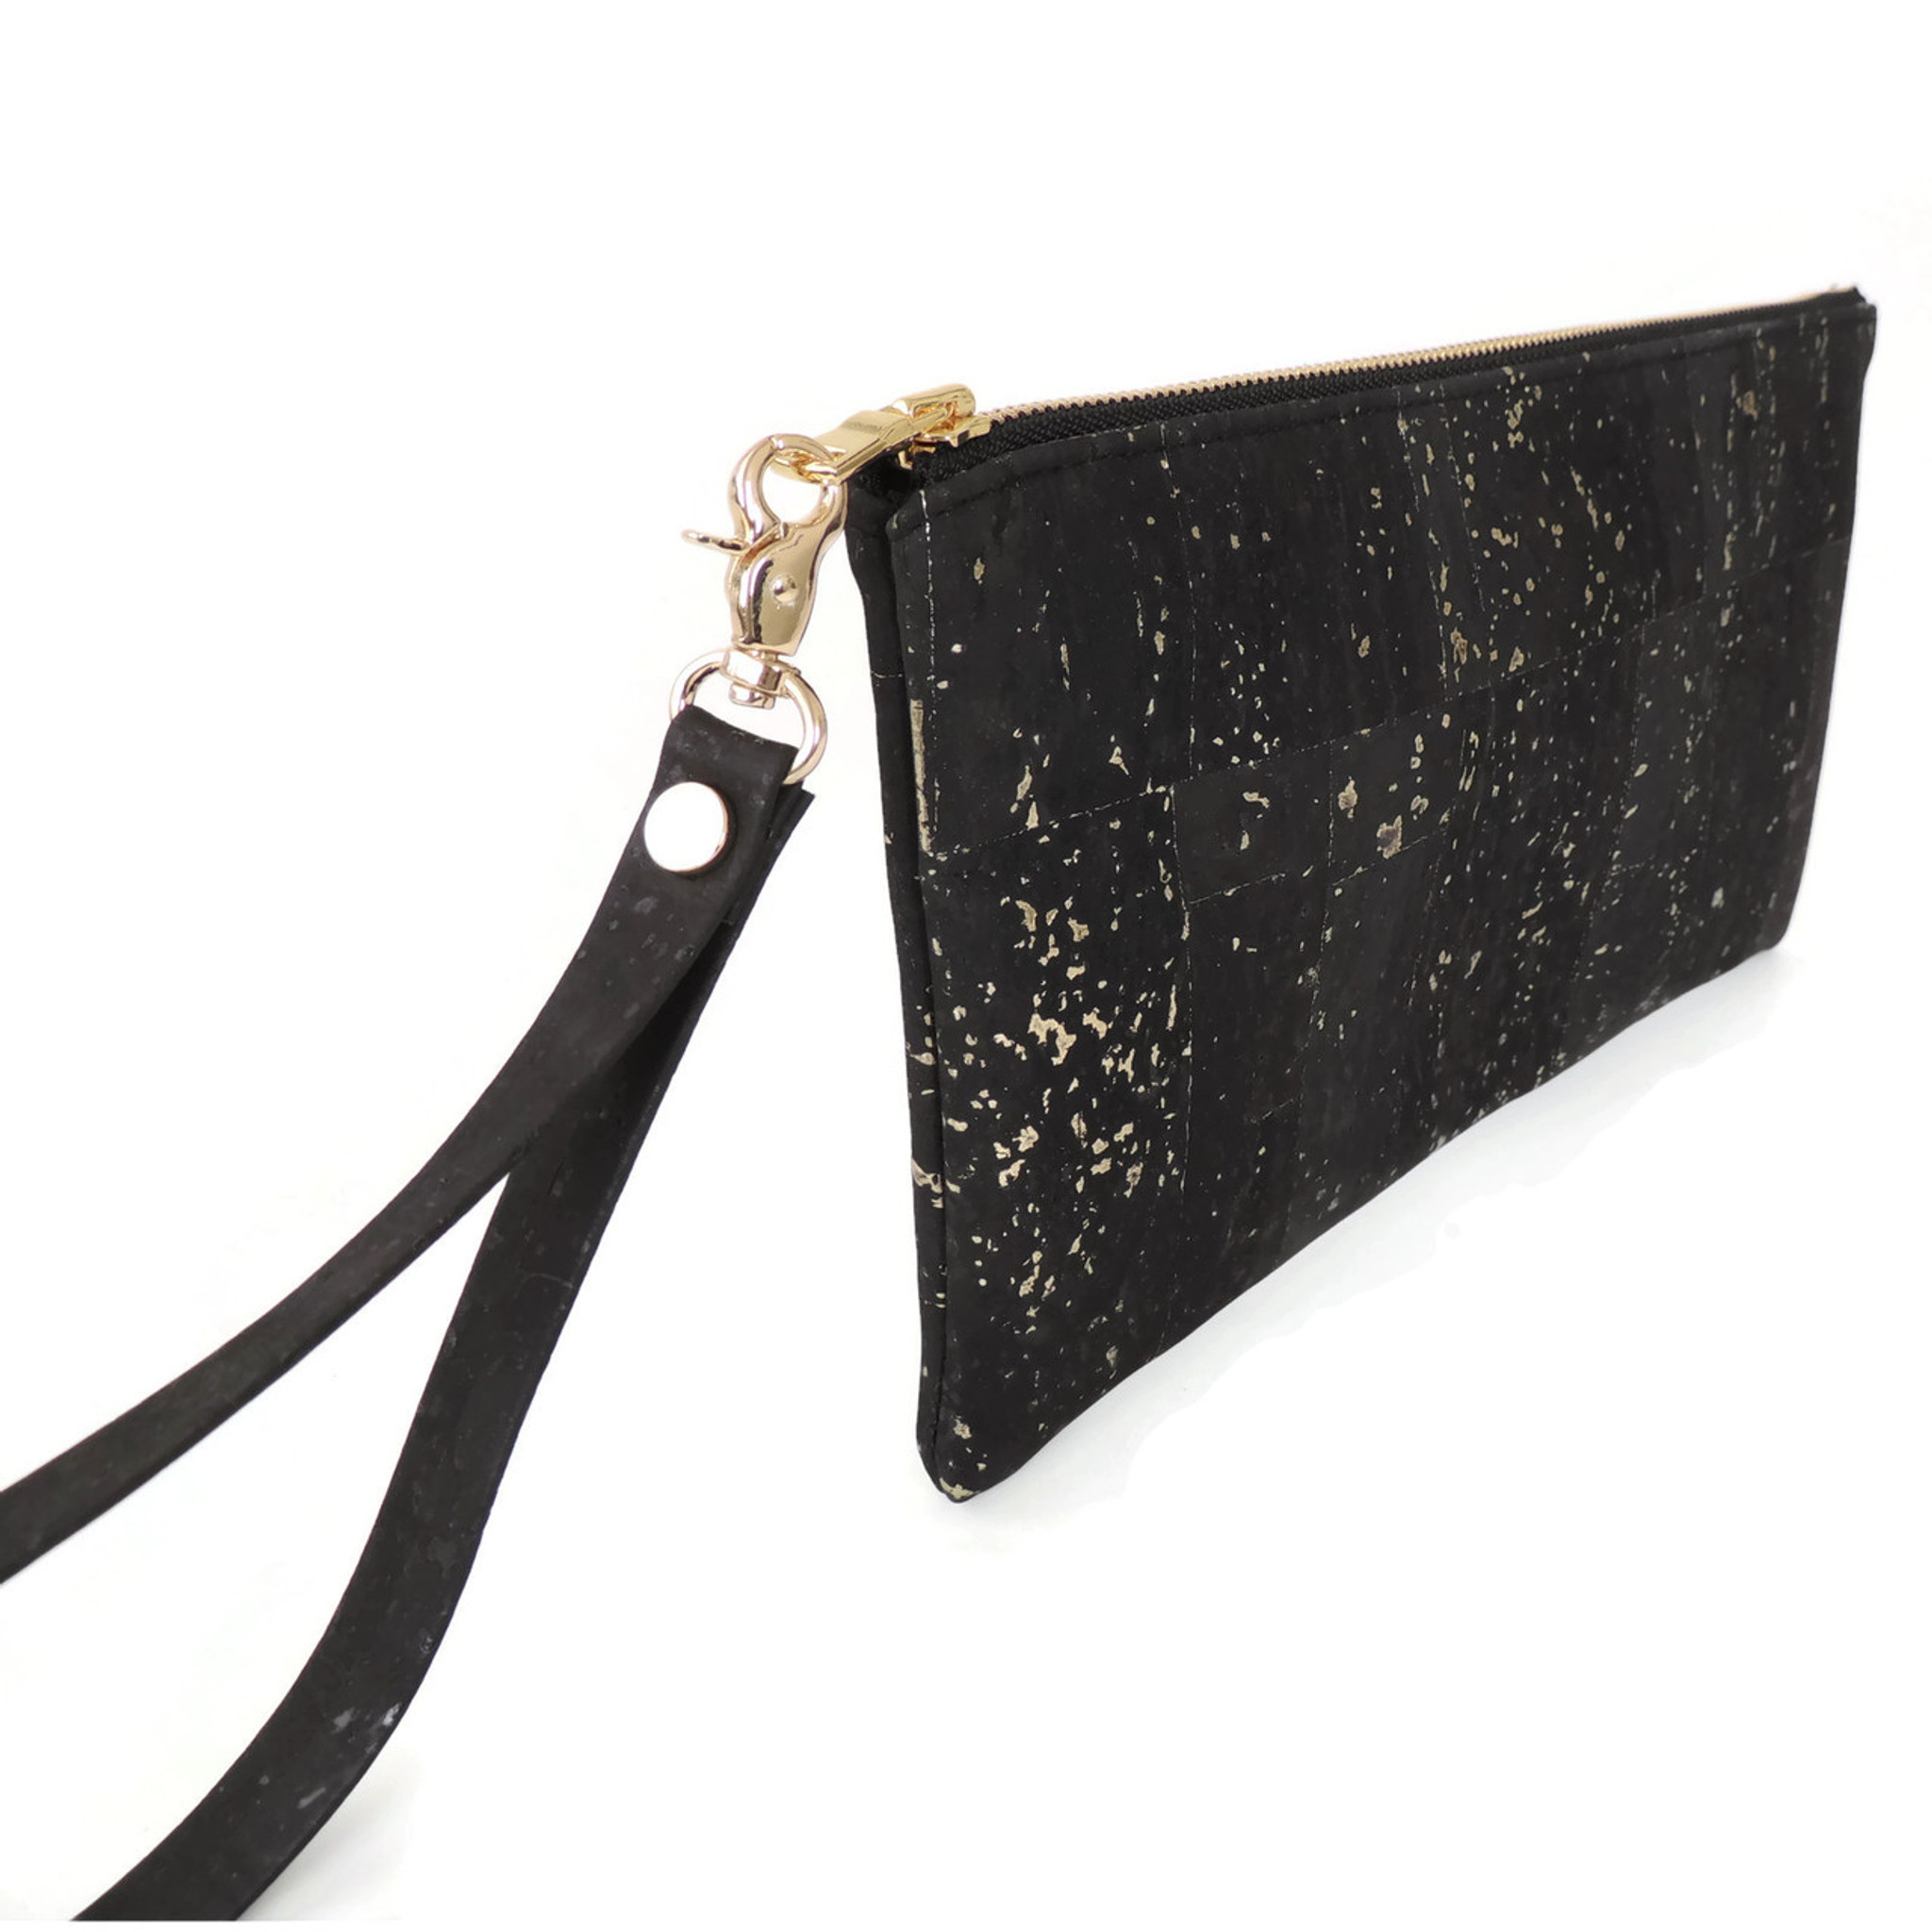 Wristlet in Black and Gold Cork